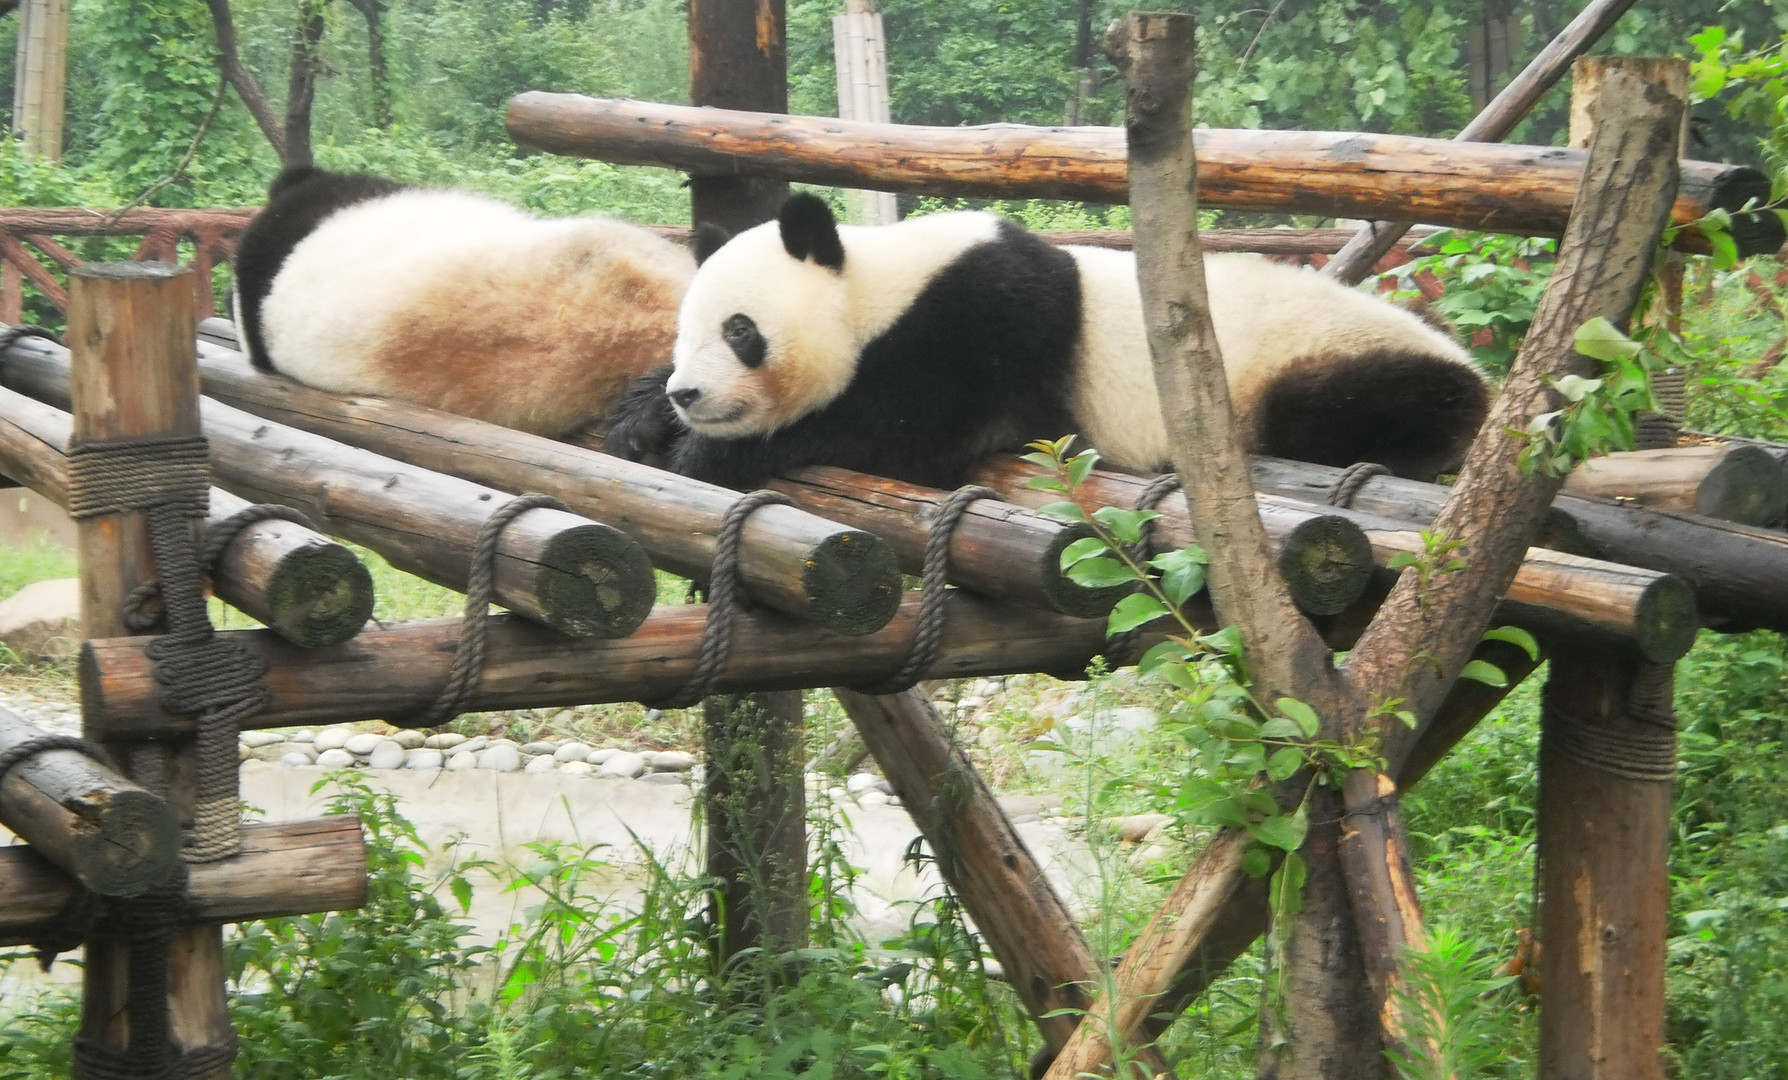 Where there are pandas...there is hope.